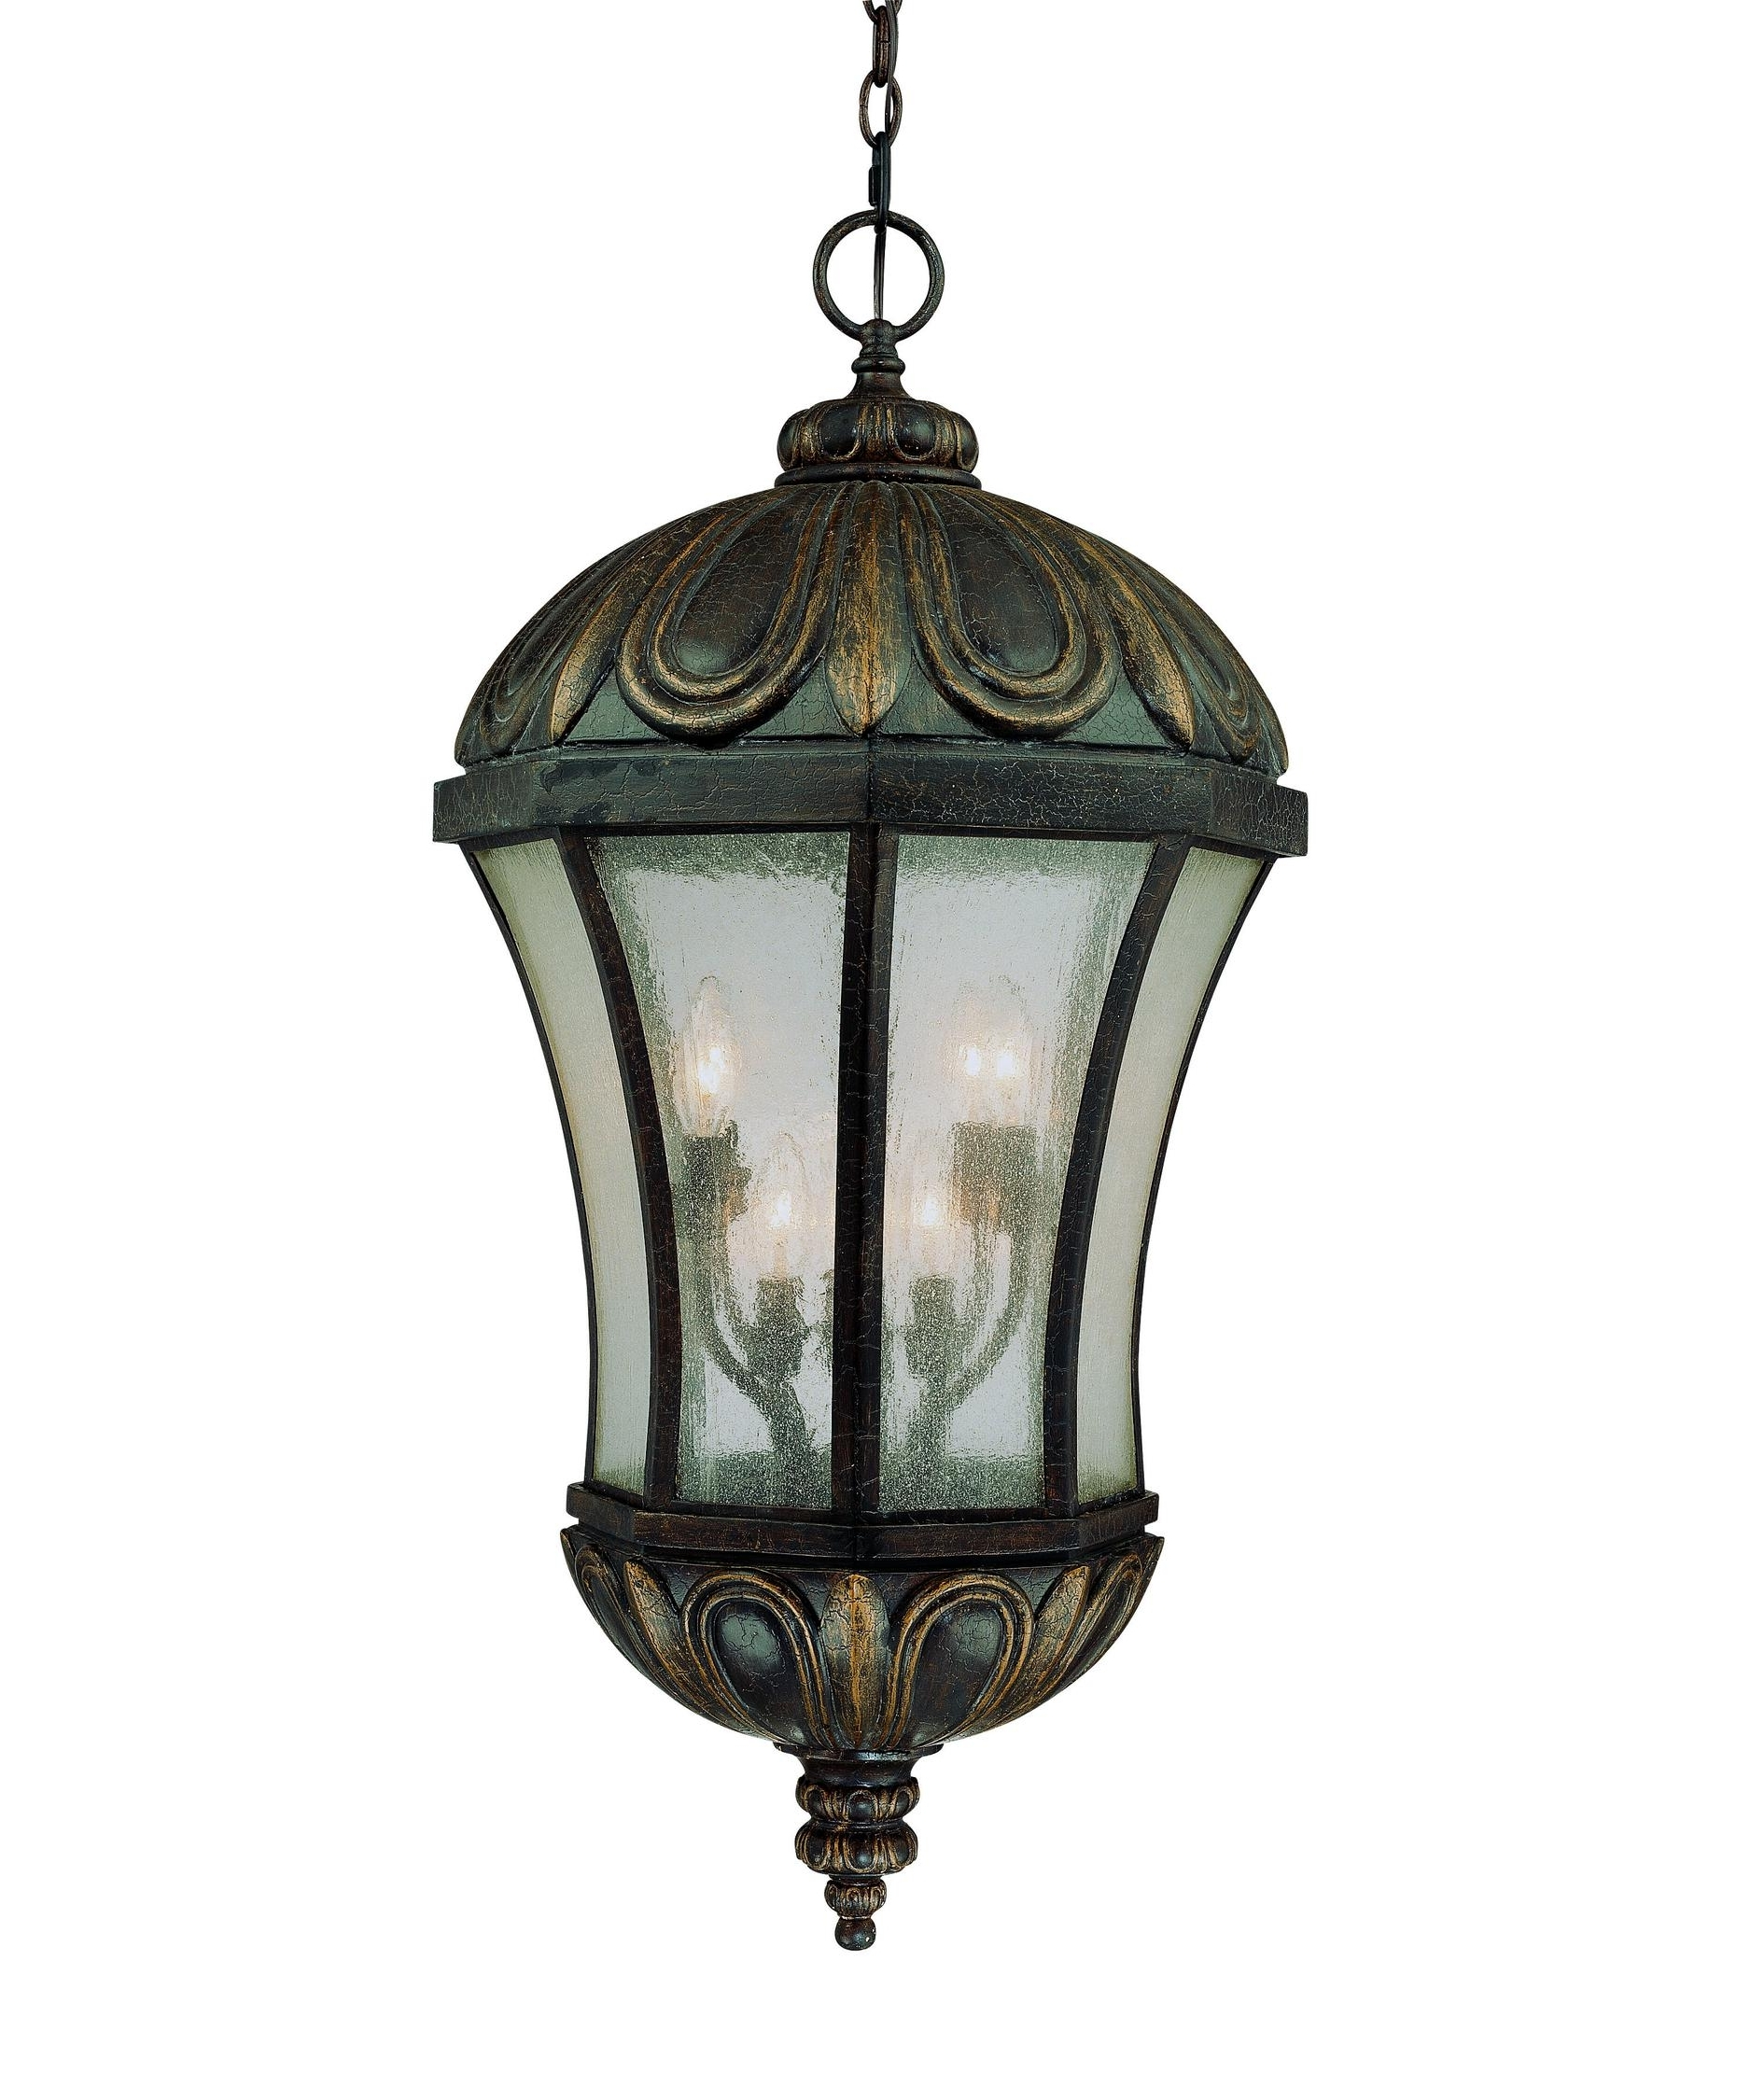 Newest Savoy House 5 2505 306 Ponce De Leon 16 Inch Wide 8 Light Outdoor Intended For Outdoor Ceiling Lights At Amazon (Gallery 5 of 20)